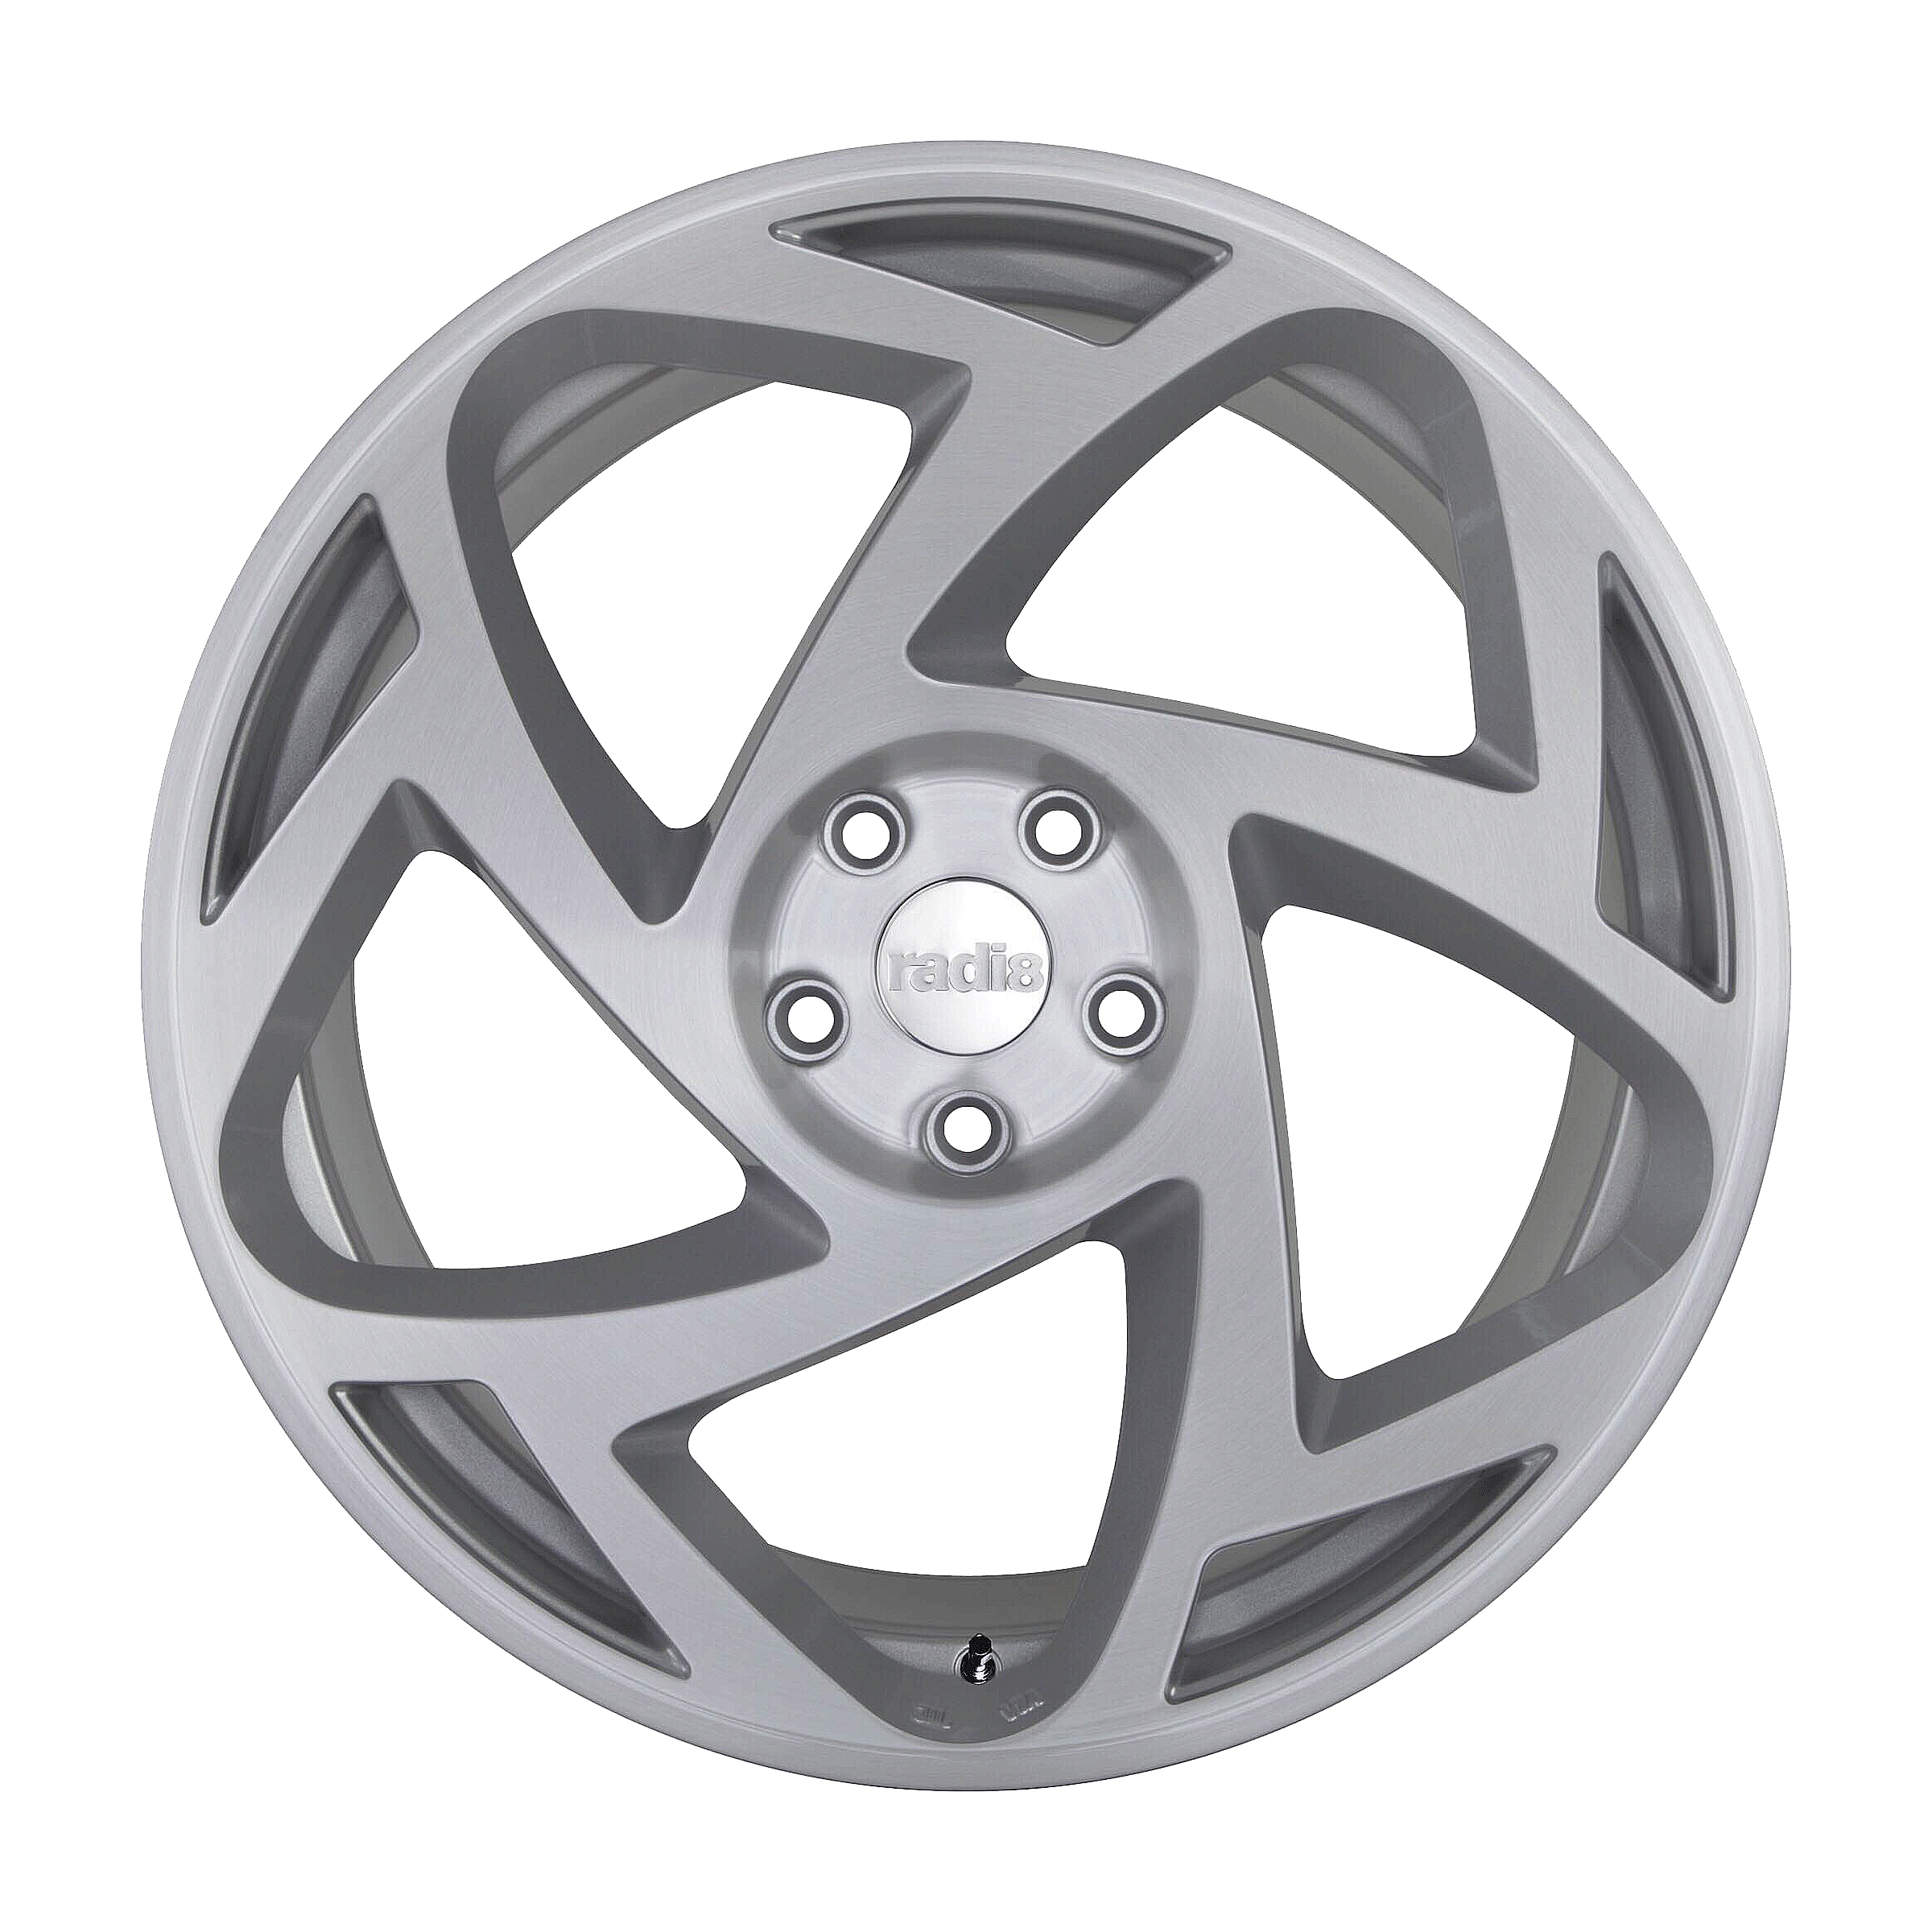 "NEW 18"" RADI8 R8S5 ALLOY WHEELS IN MATT SILVER WITH MATT POLISHED FACE, WIDER 9.5"" REARS"